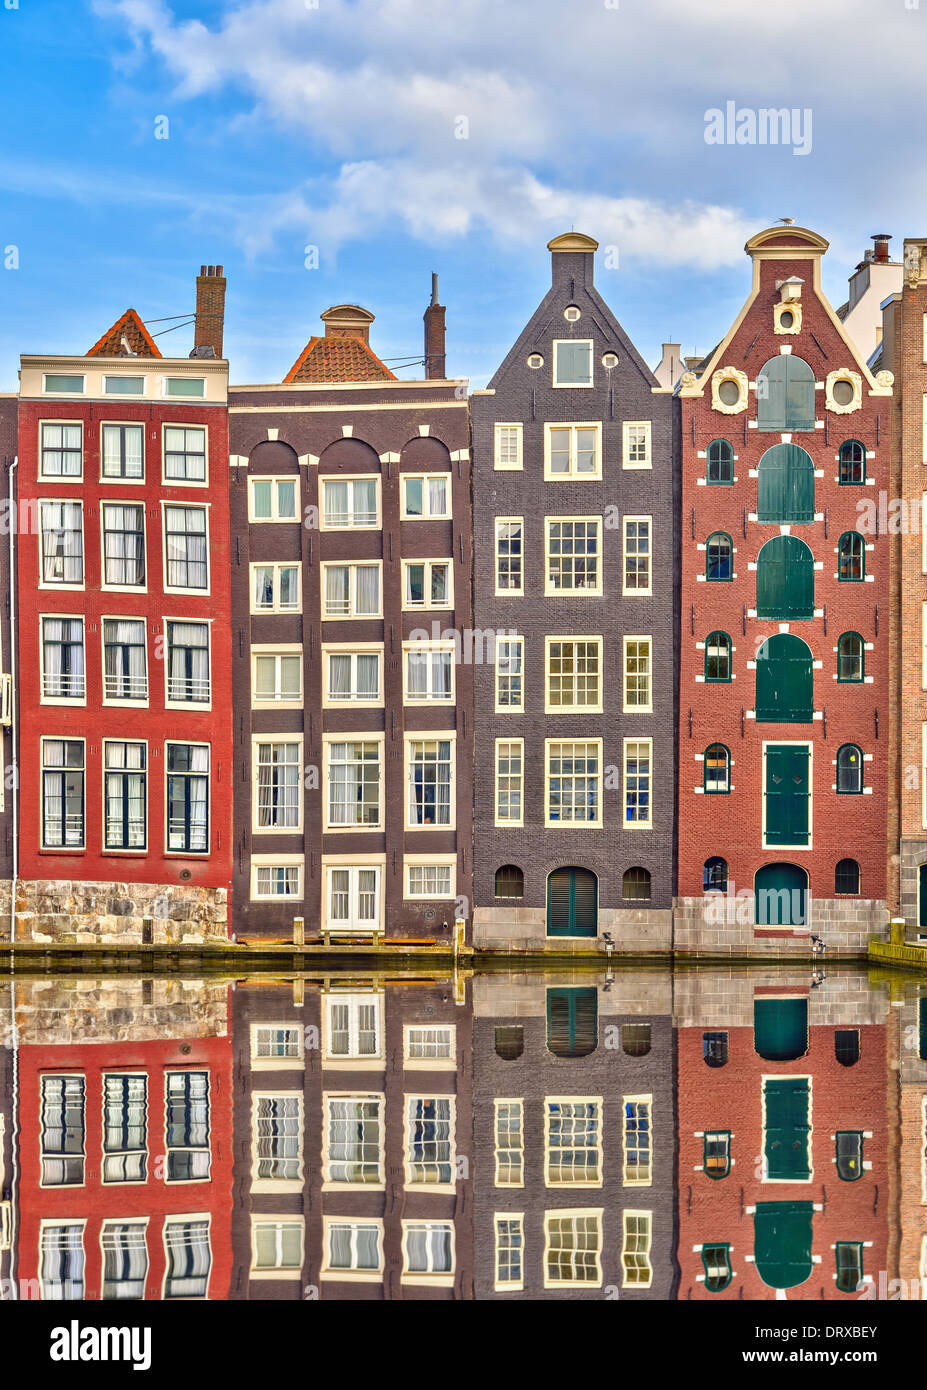 Les bâtiments traditionnels néerlandais, Amsterdam Photo Stock